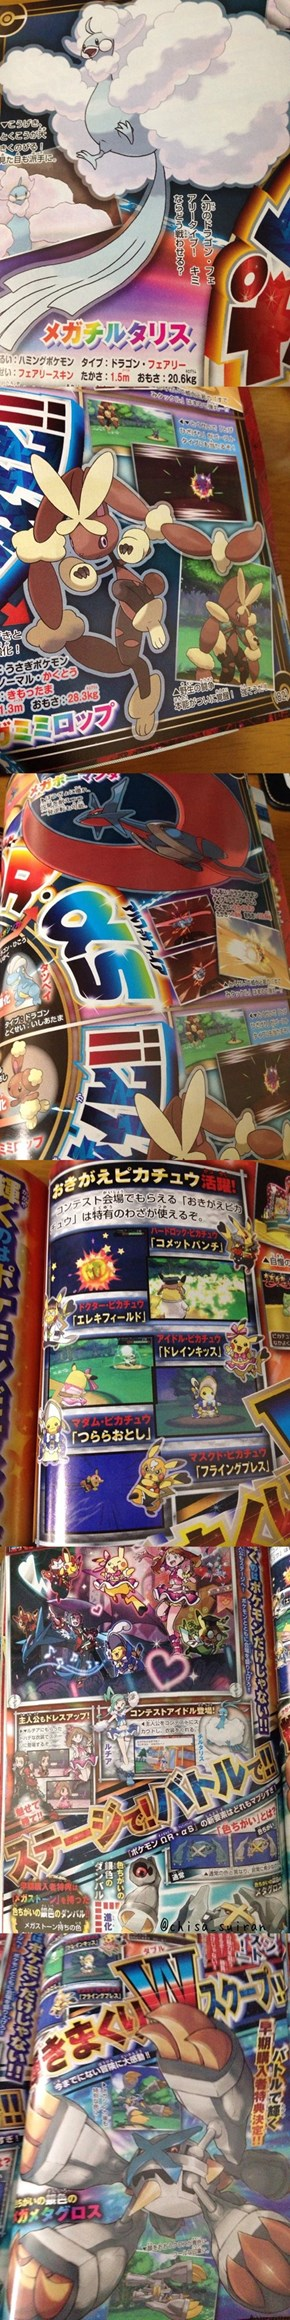 CoroCoro Scans Reveals New Mega and Contest Info